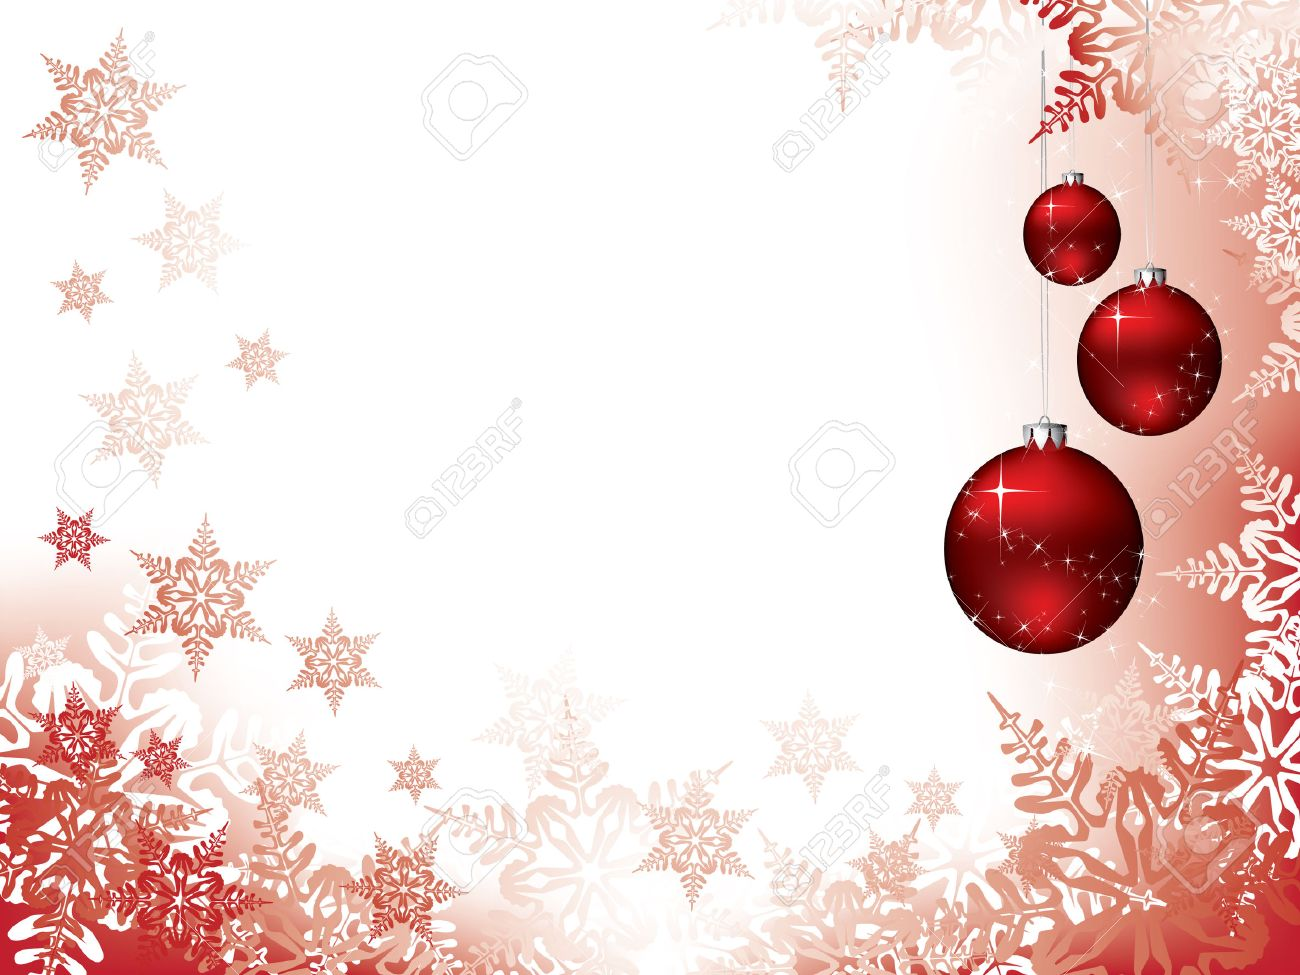 Free Download Christmas Backgrounds For Desktop, Powerpoint